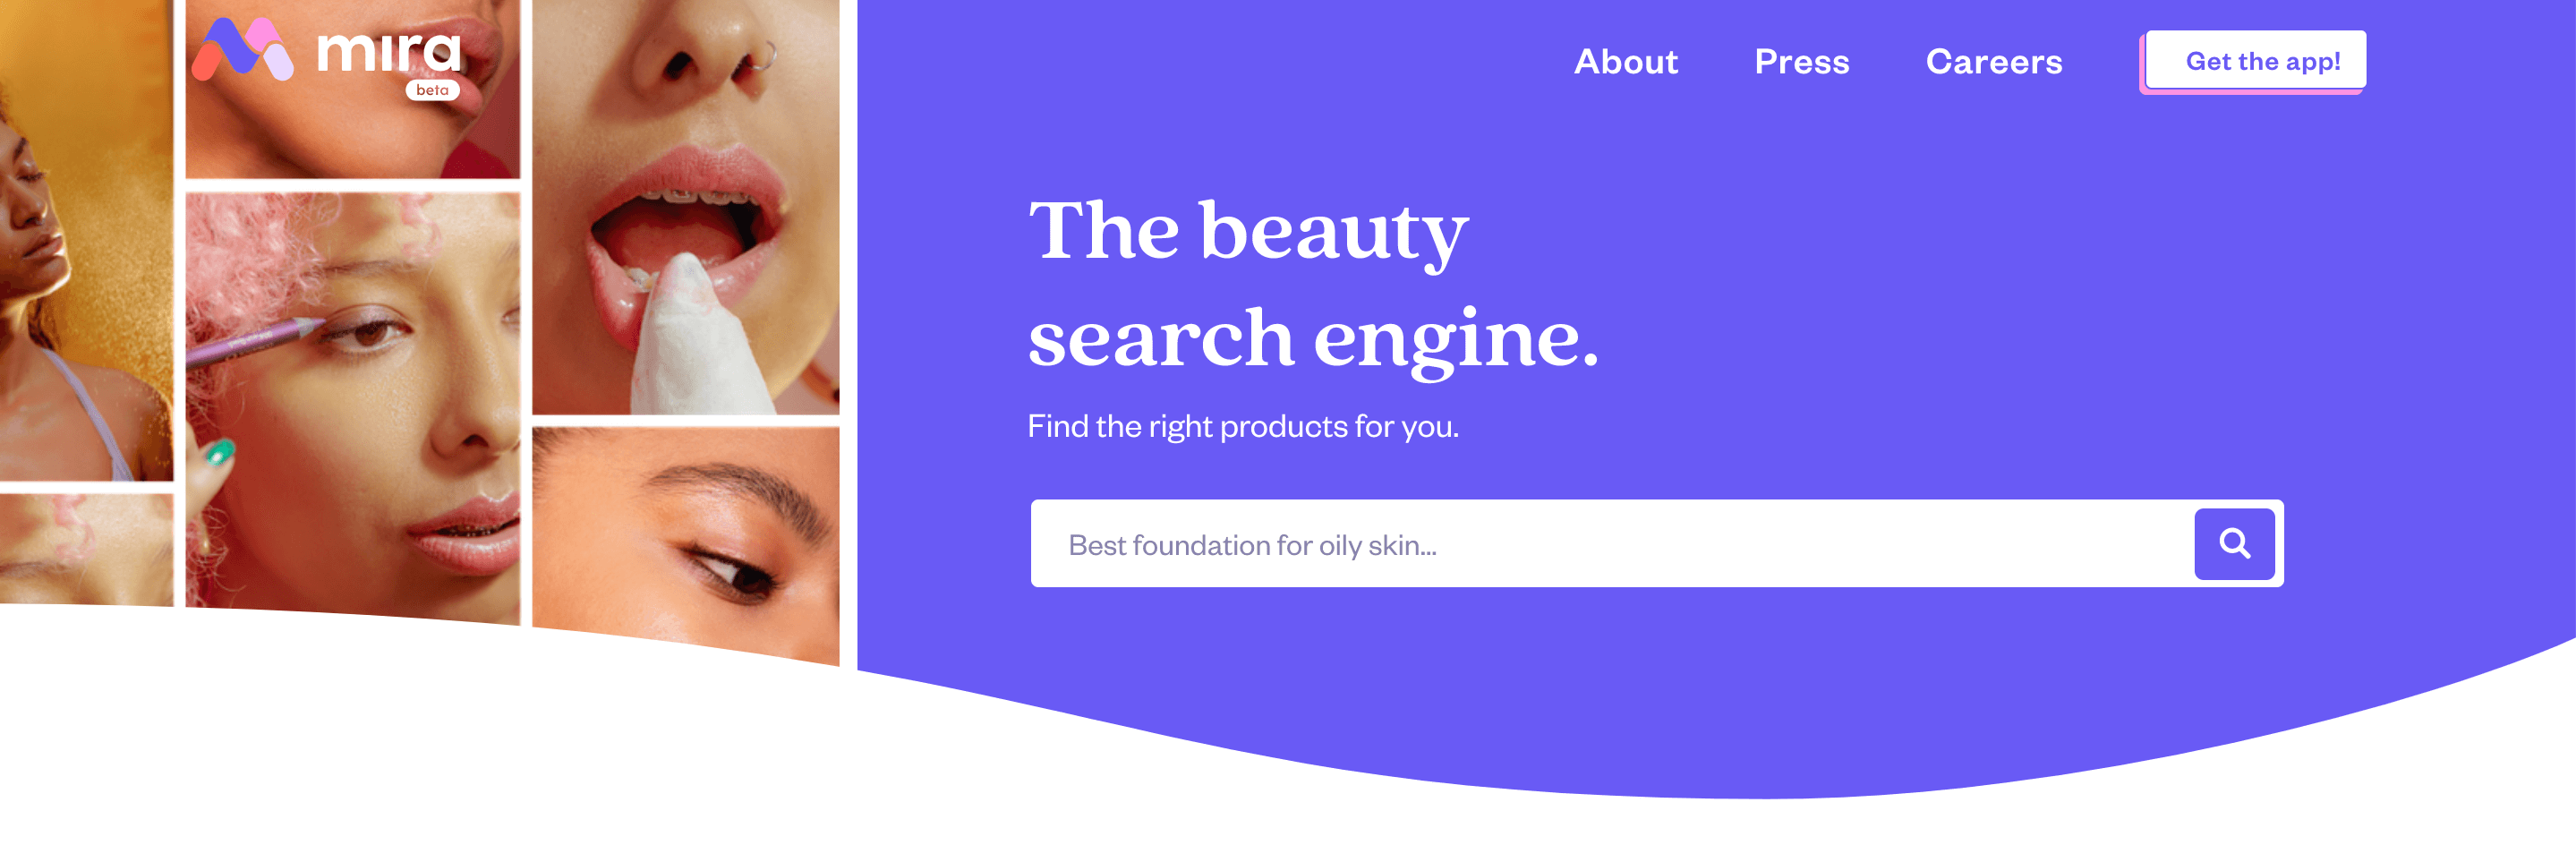 Mira has personalized search results and product reviews...just like Google Shopping. AskMira.com